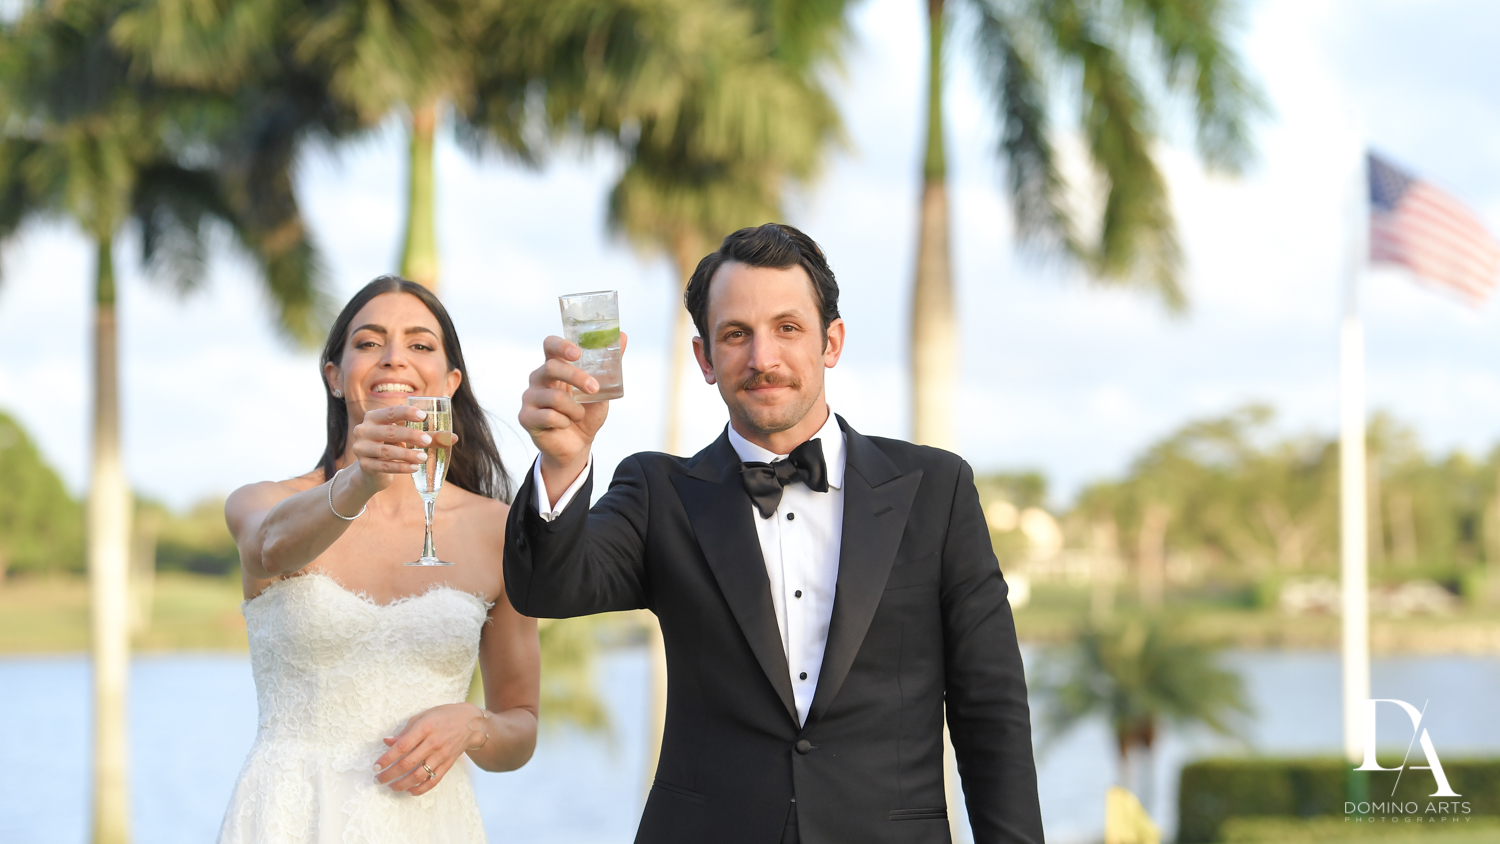 Cheers at Stunning Golf Course Wedding at PGA National Palm Beach by Domino Arts Photography